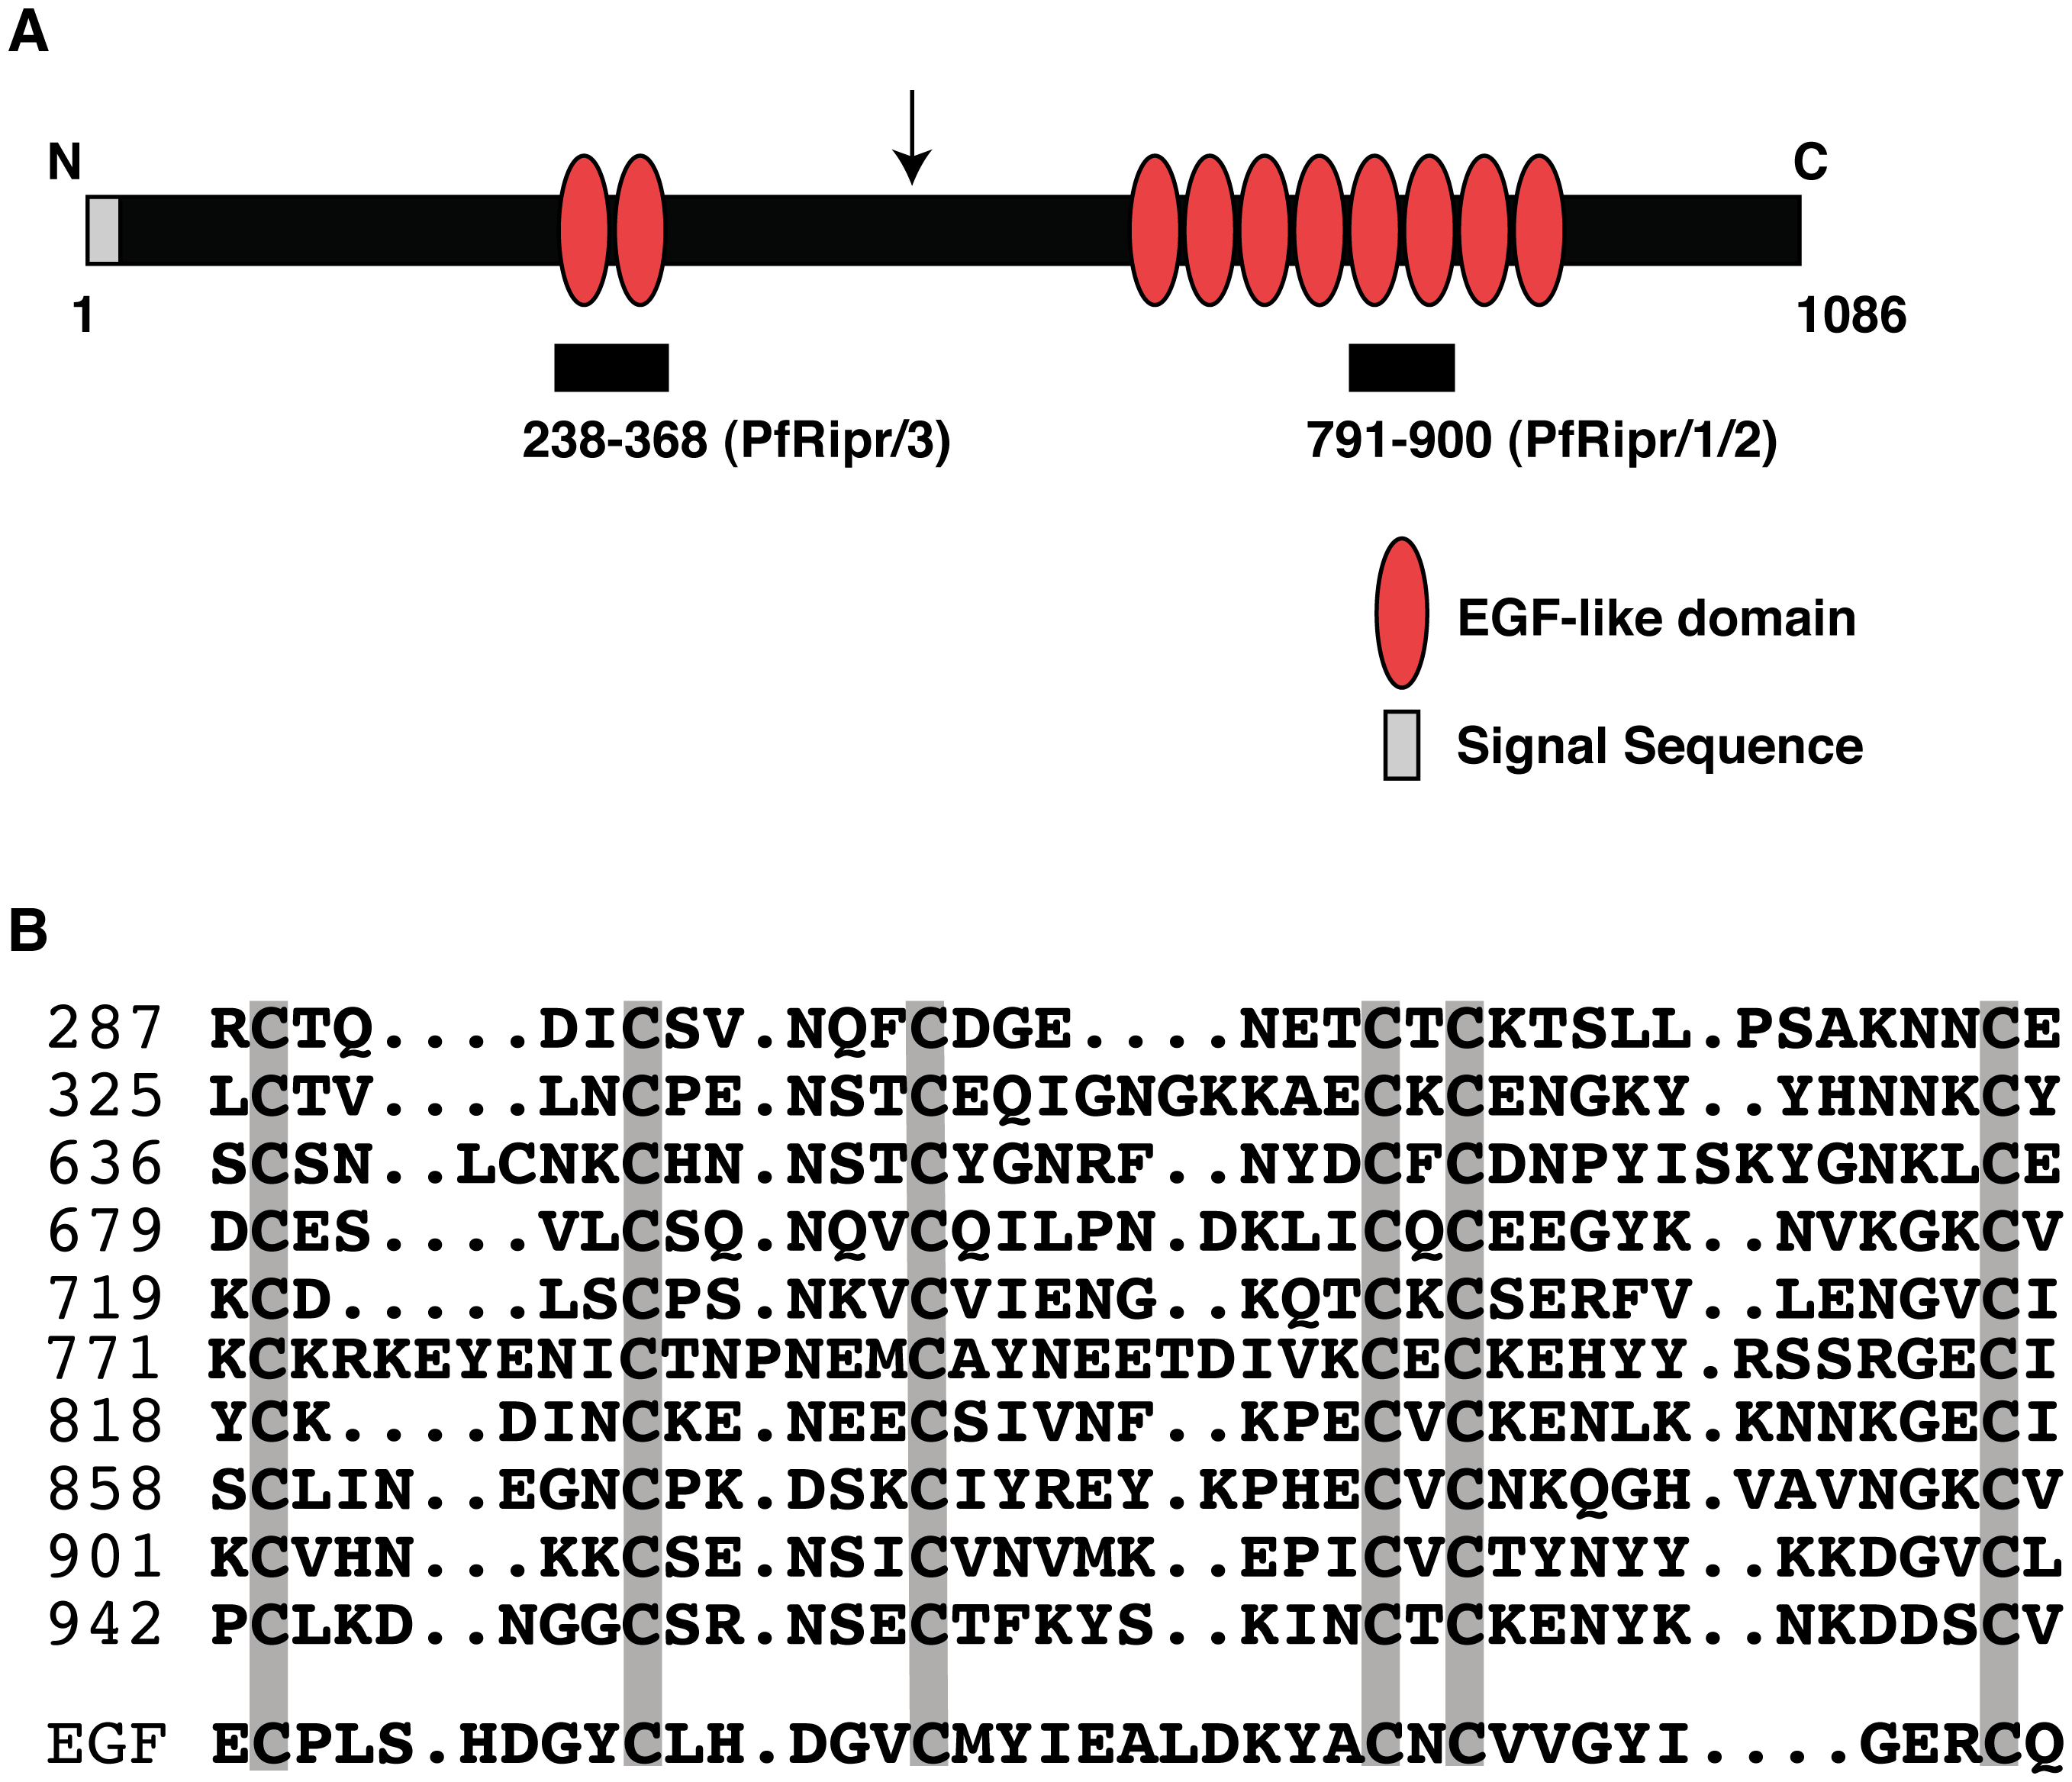 PfRipr protein has ten EGF-like domains.